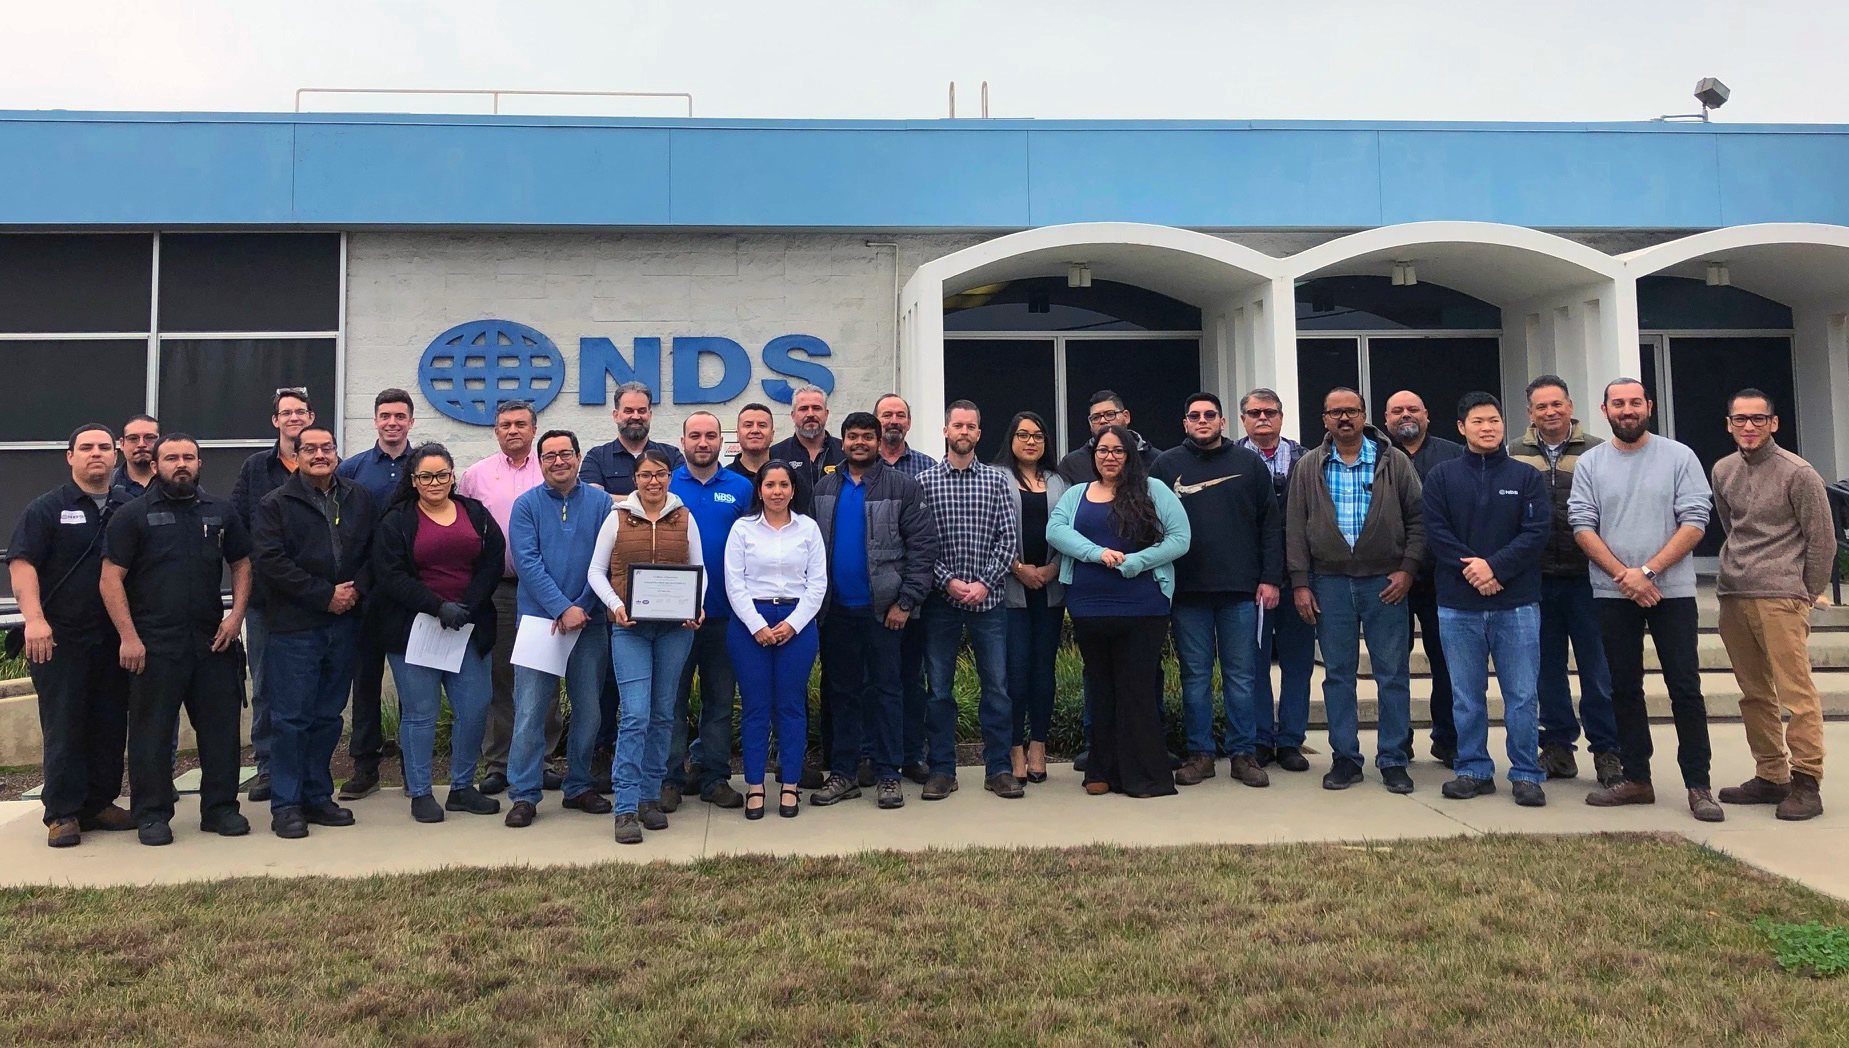 The NORMA Group team at the Lindsay plant collaborated cross-functionally.